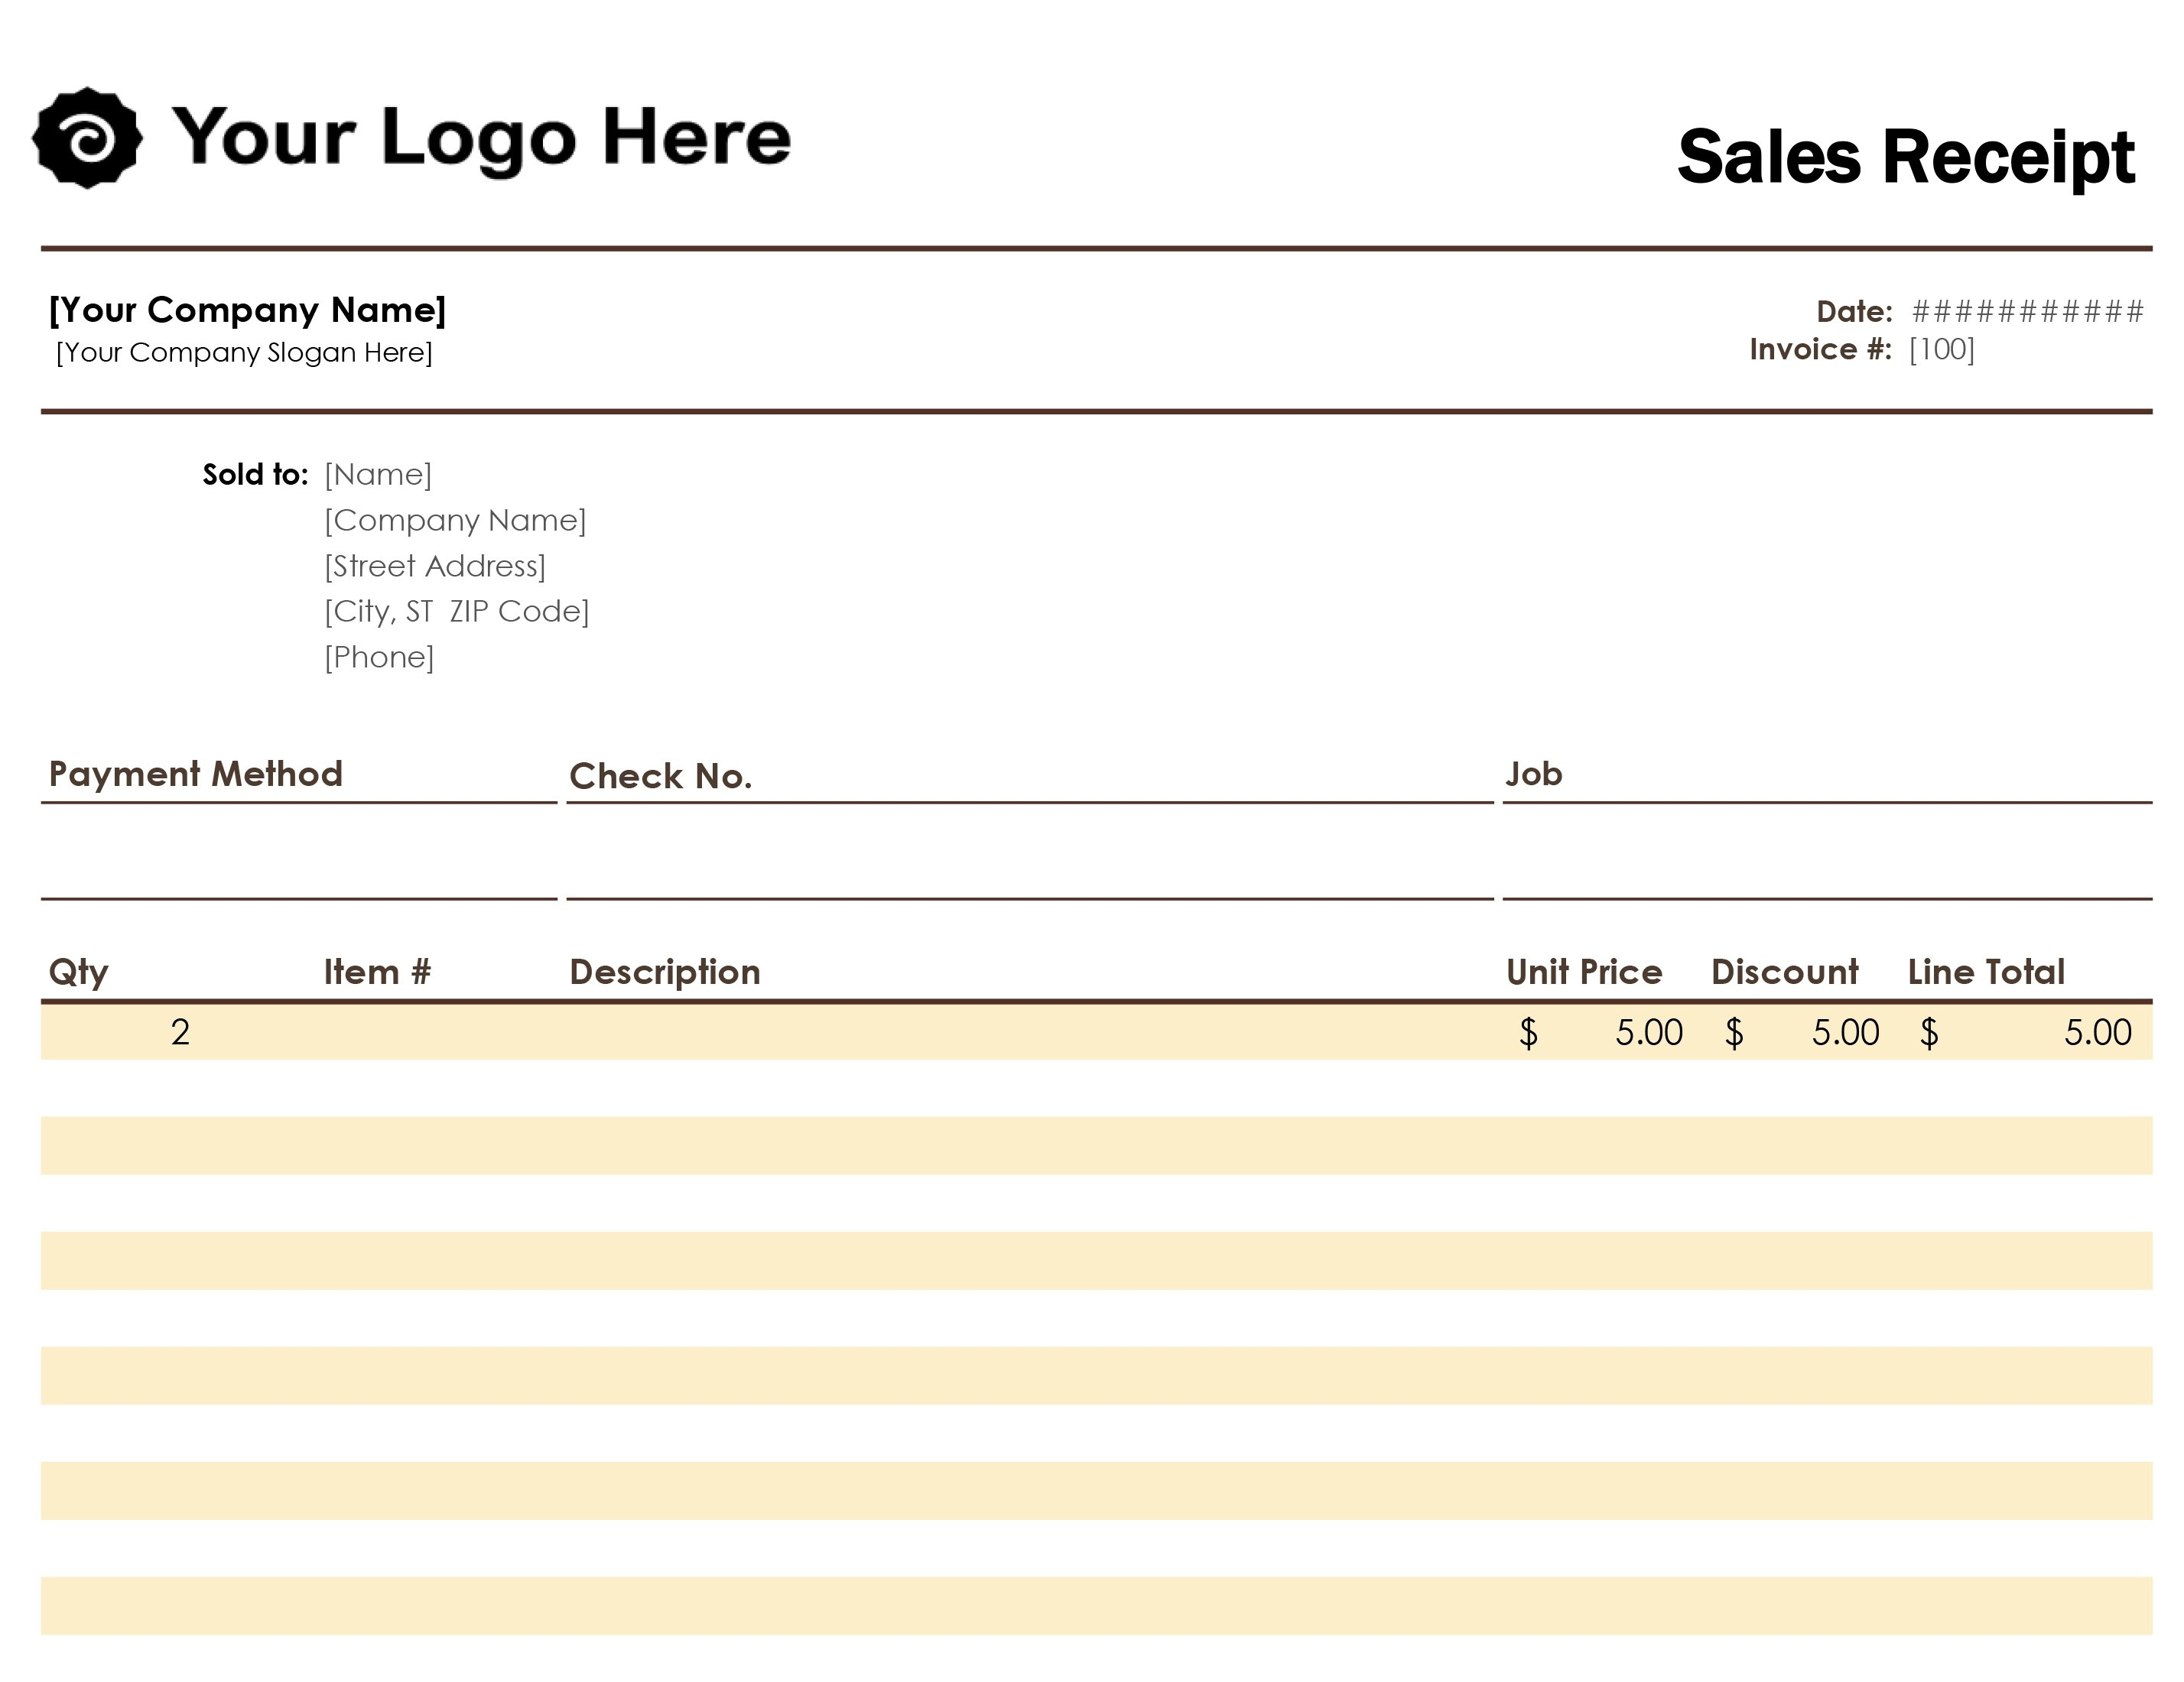 Receipts - Office - Free Printable Sales Receipt Form